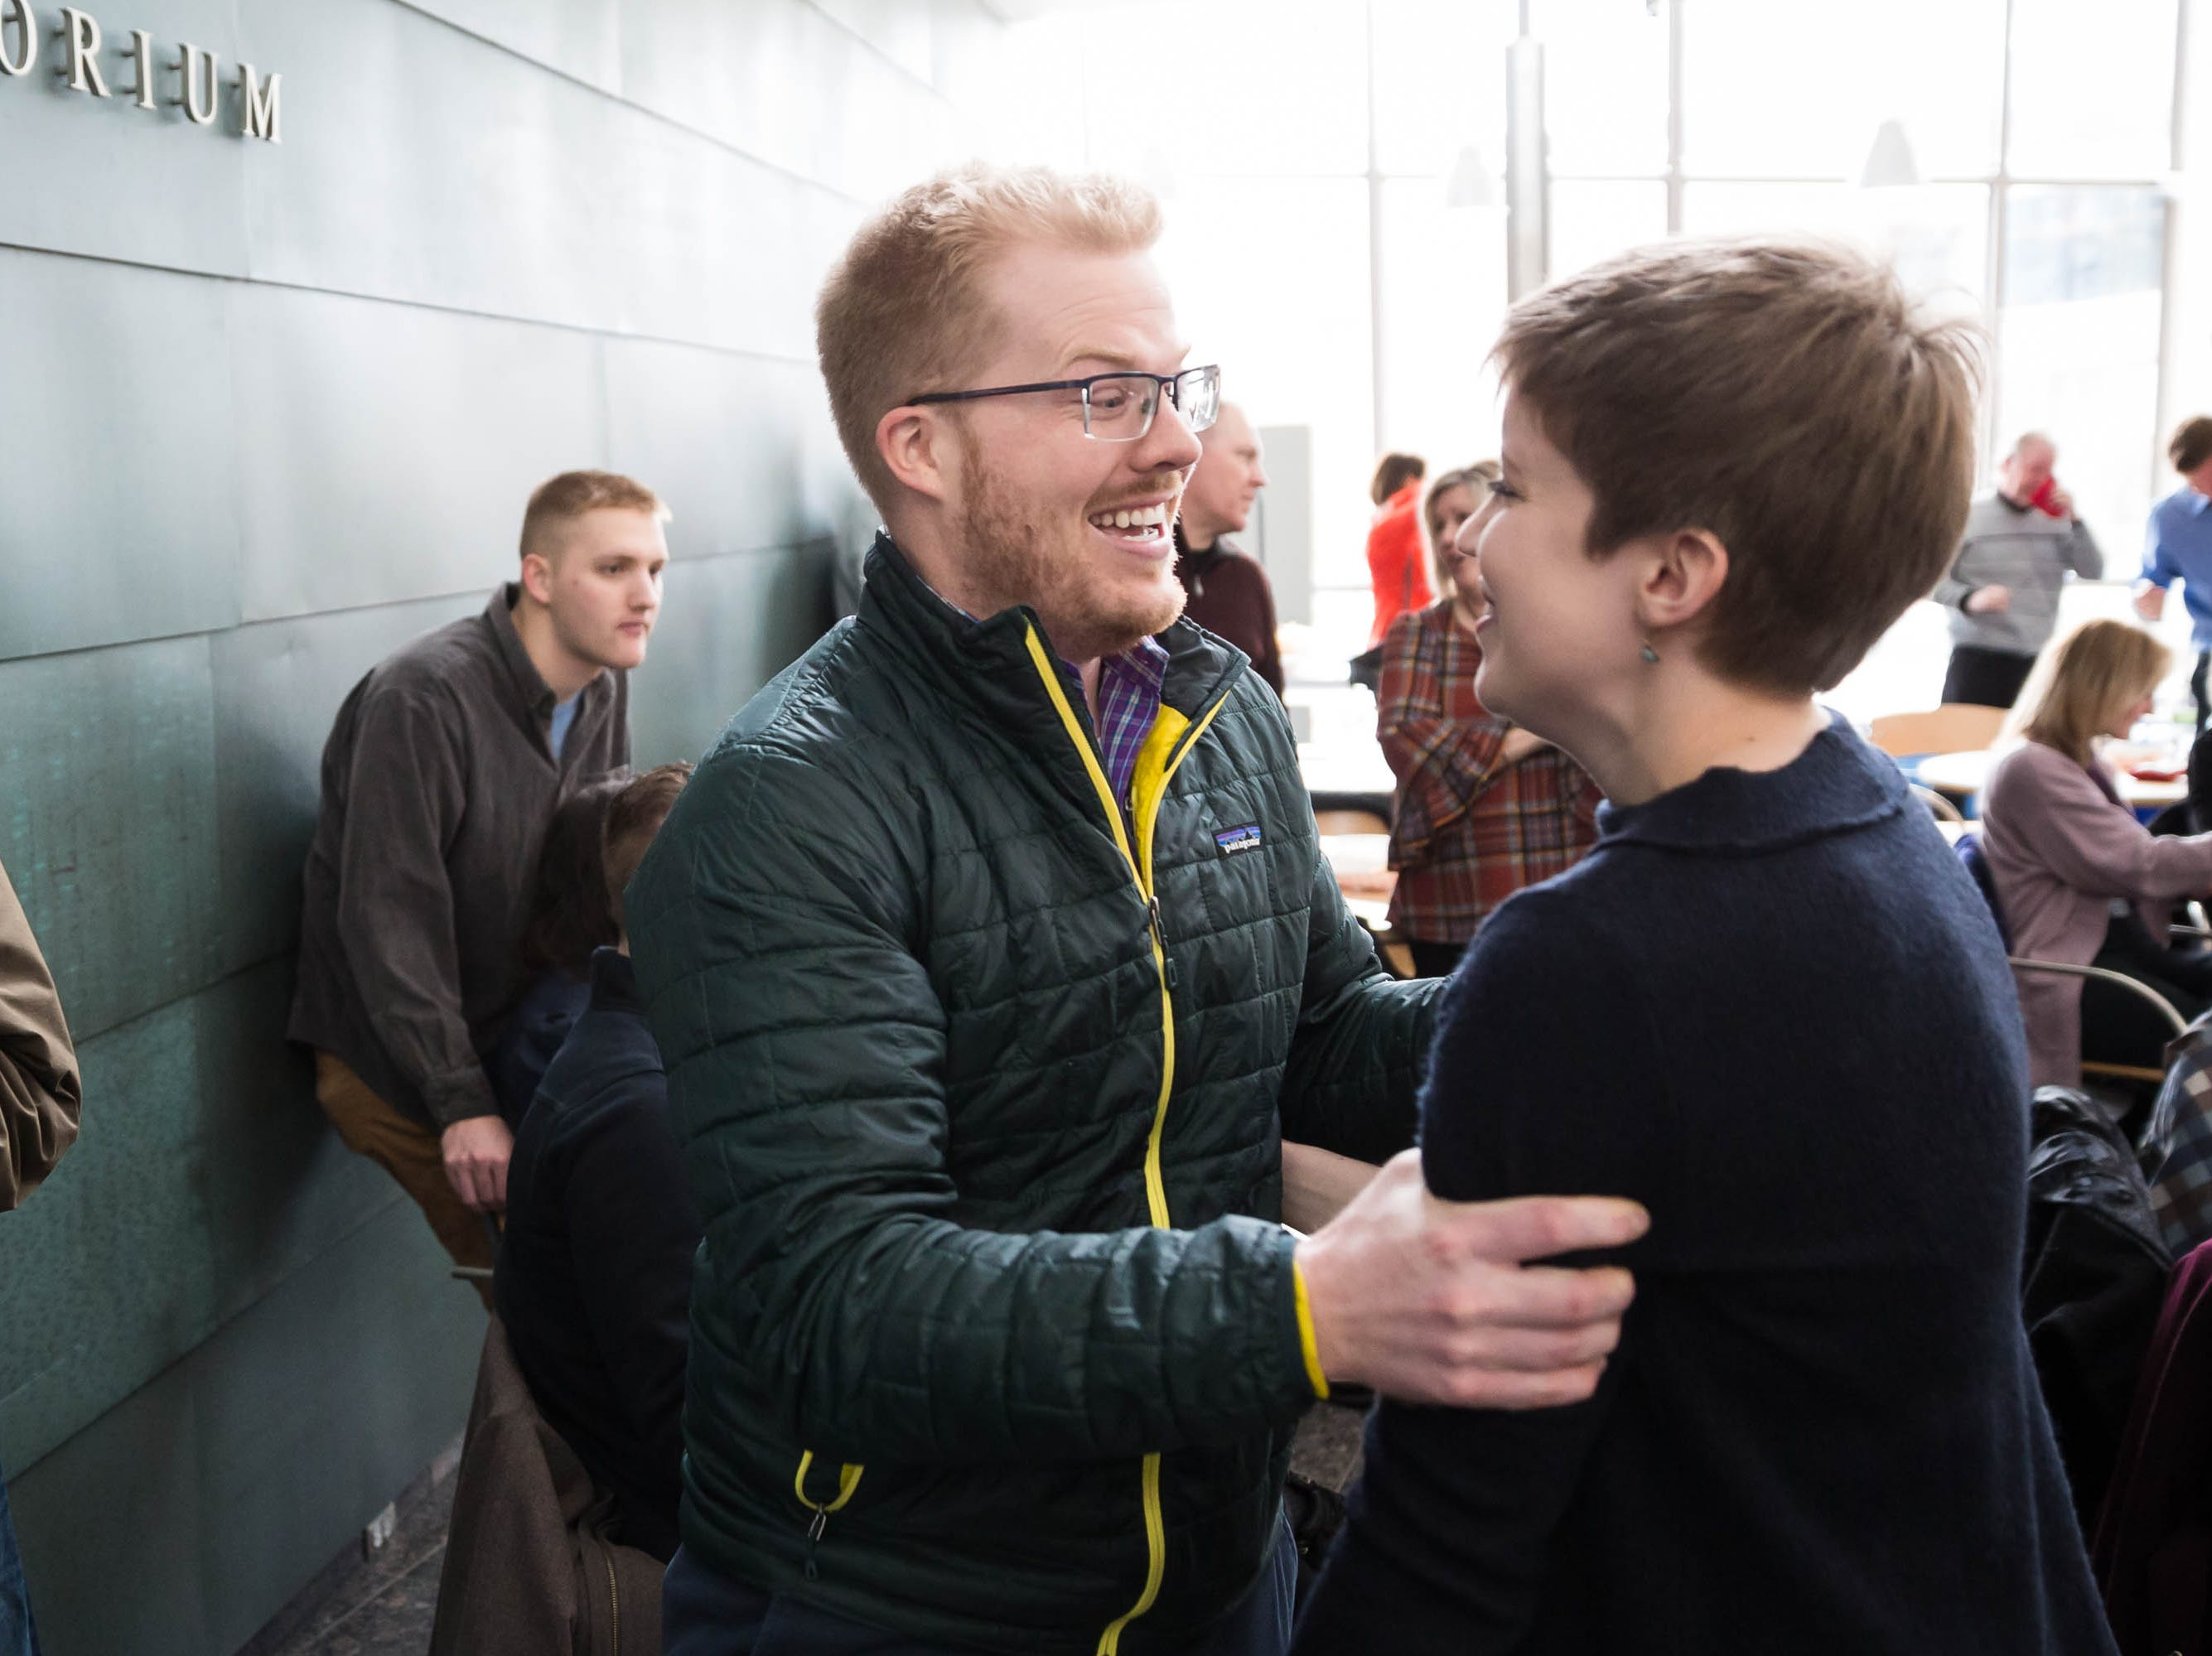 Sarah Floden, right celebrates getting matched with the University of Wisconsin with her fiancée Patrick Kolker during Match Day at UIHC in Iowa City on Friday, March 15, 2019.